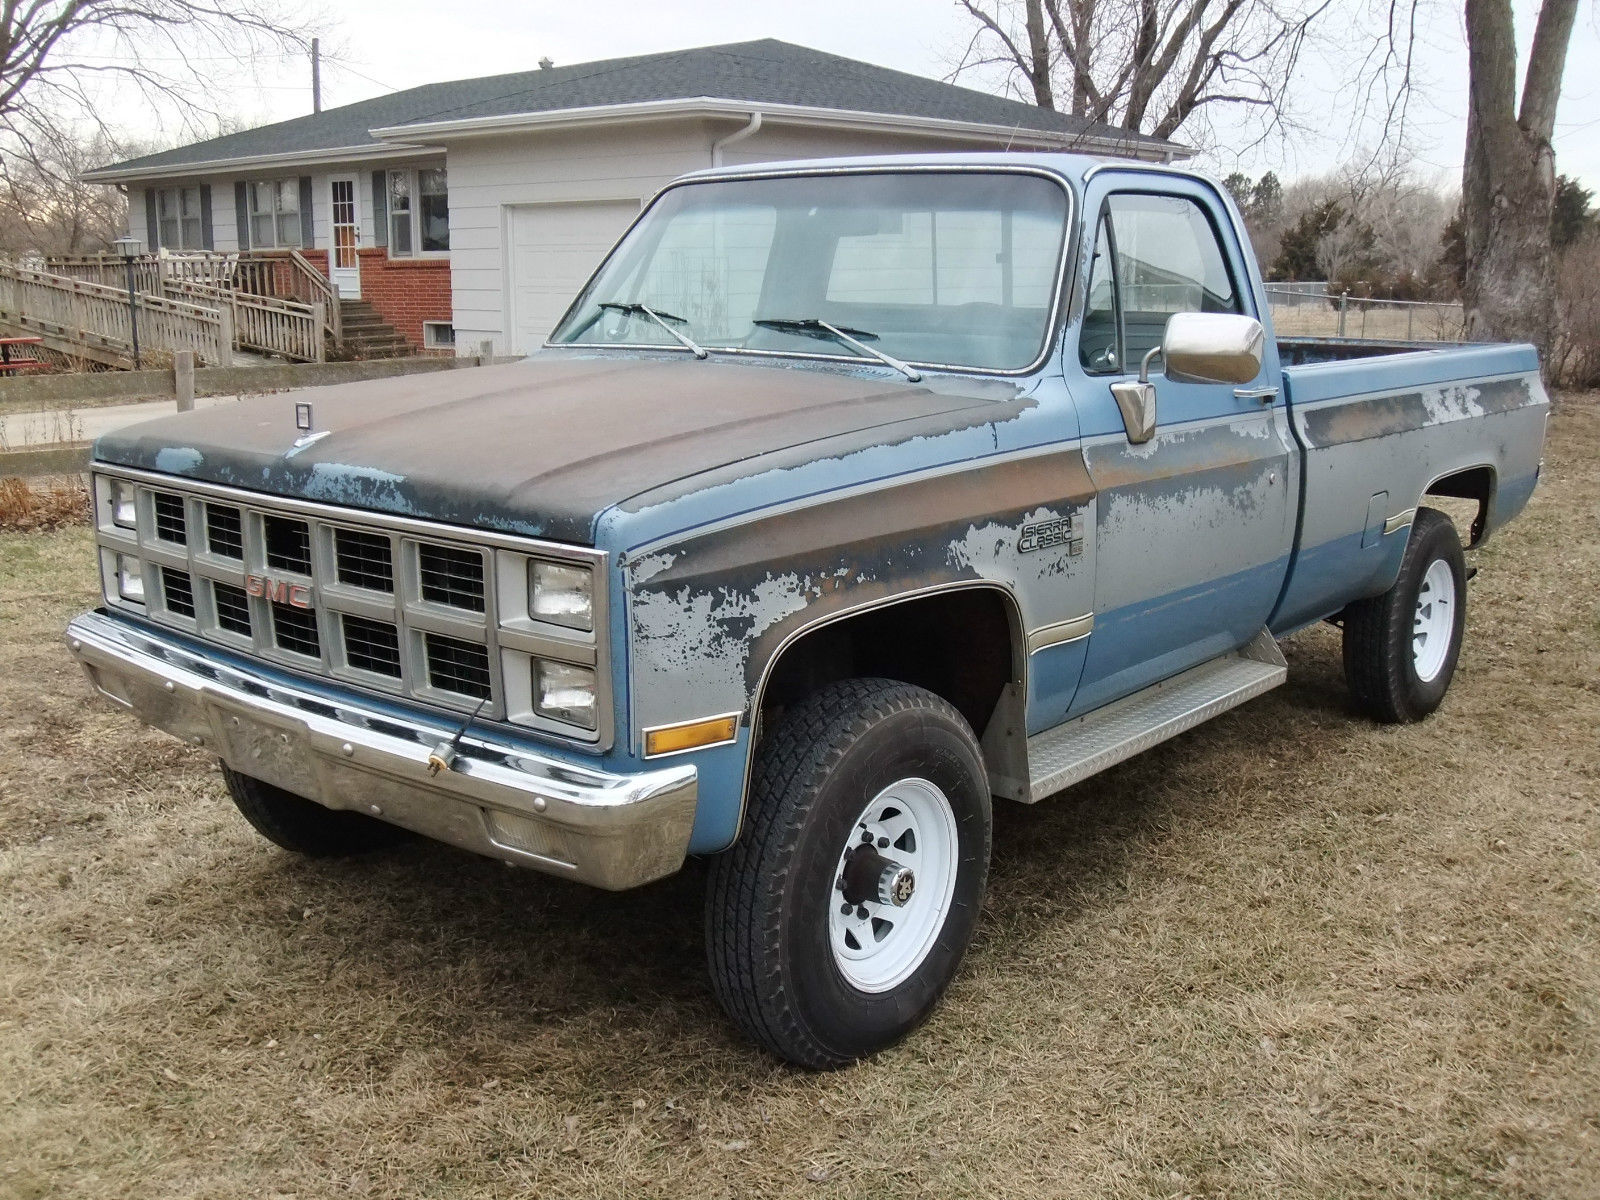 1982 gmc k2500 4x4 62l diesel oem paint 99 rustfree chevrolet ck pickup 2500 1 1982 gmc k2500 4x4 6 2l diesel oem paint 99% rustfree chevrolet c  at crackthecode.co